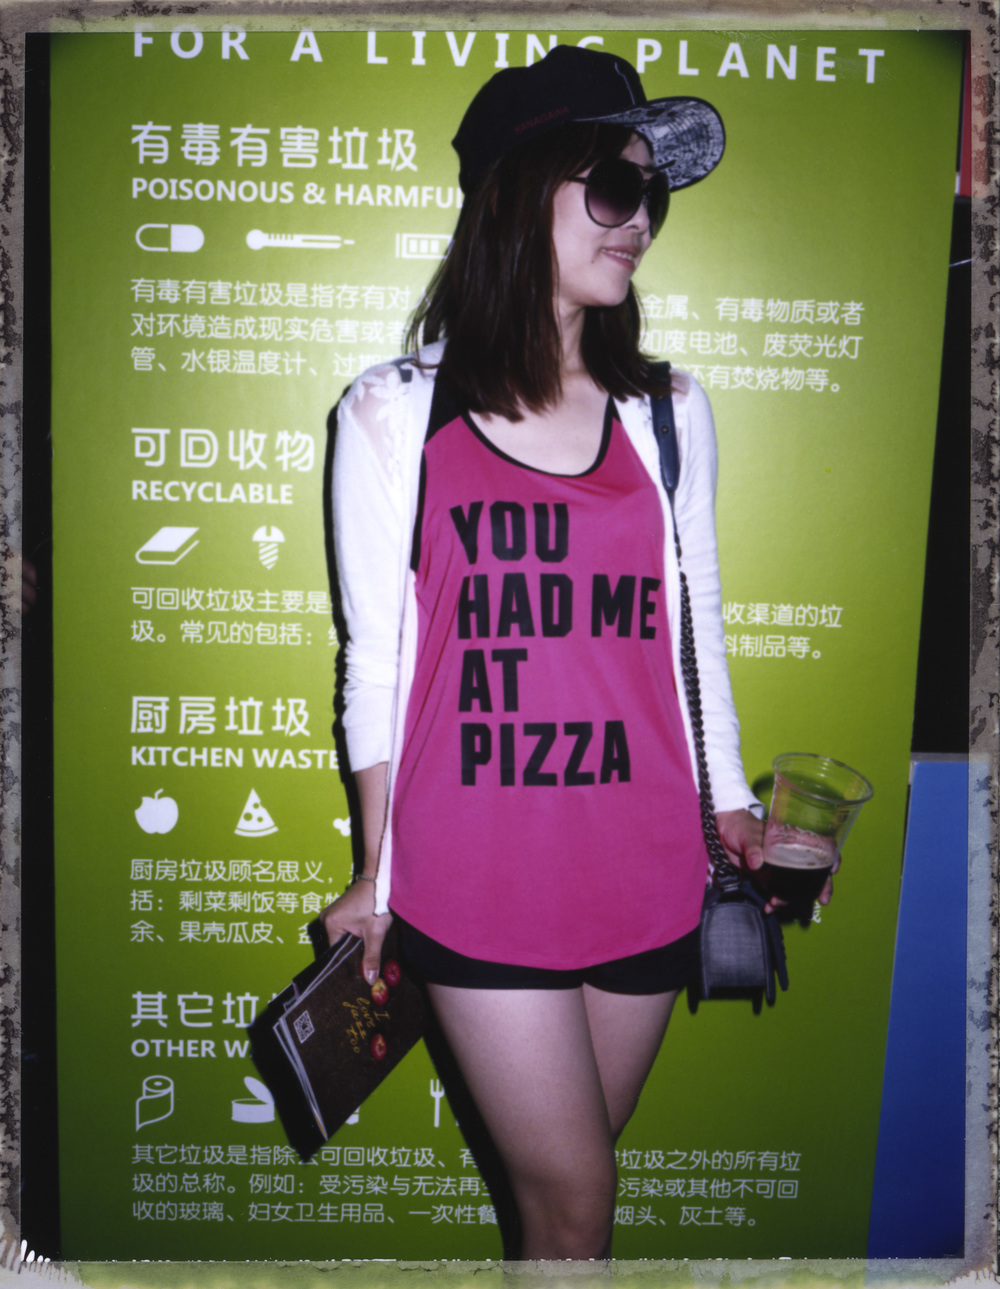 You had me at pizza.jpg